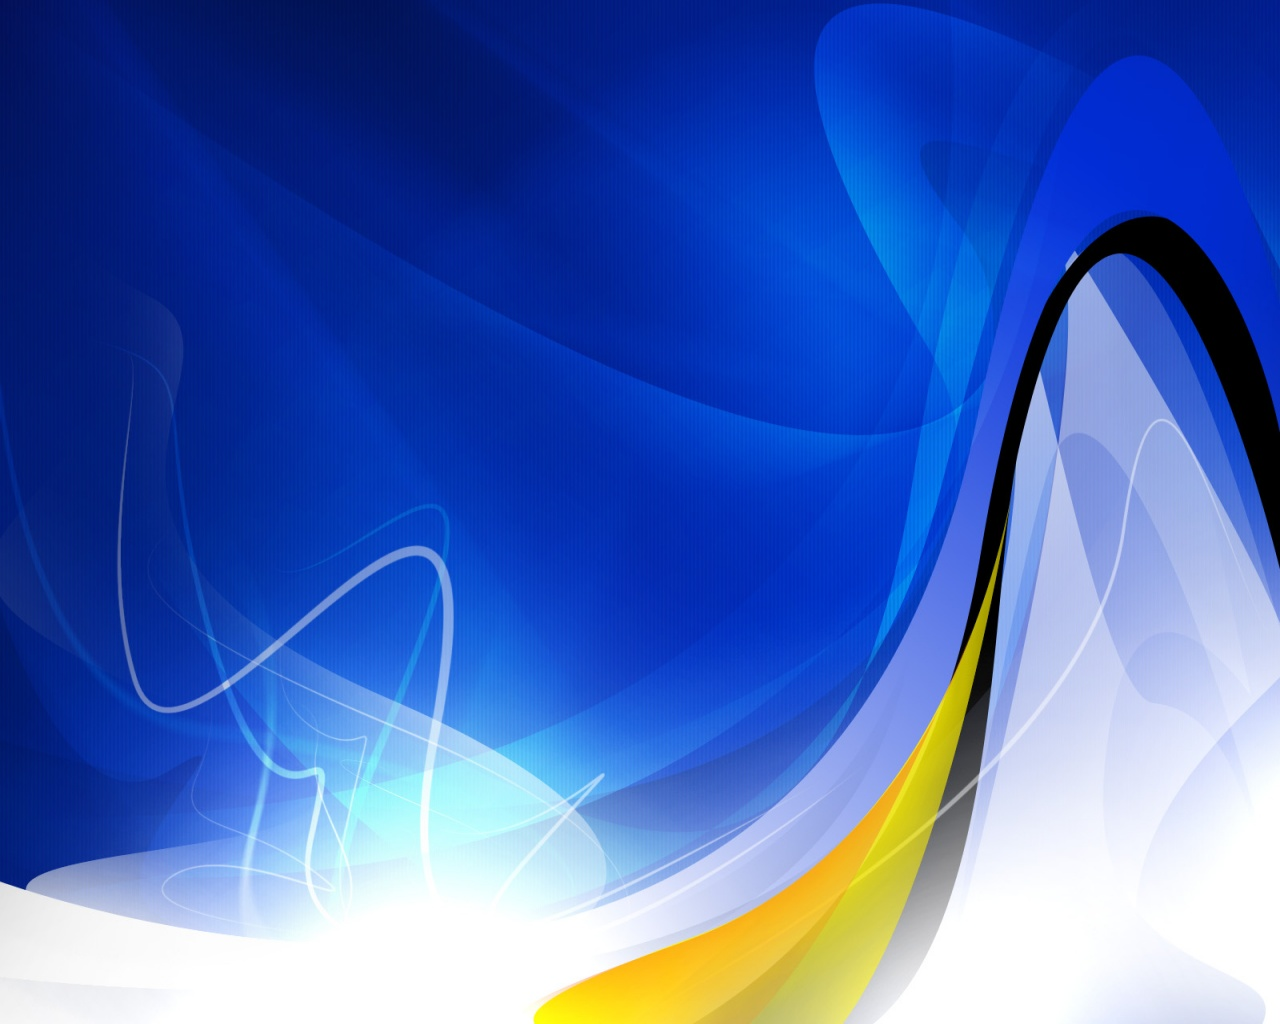 abstract wallpapers hd blue  mix